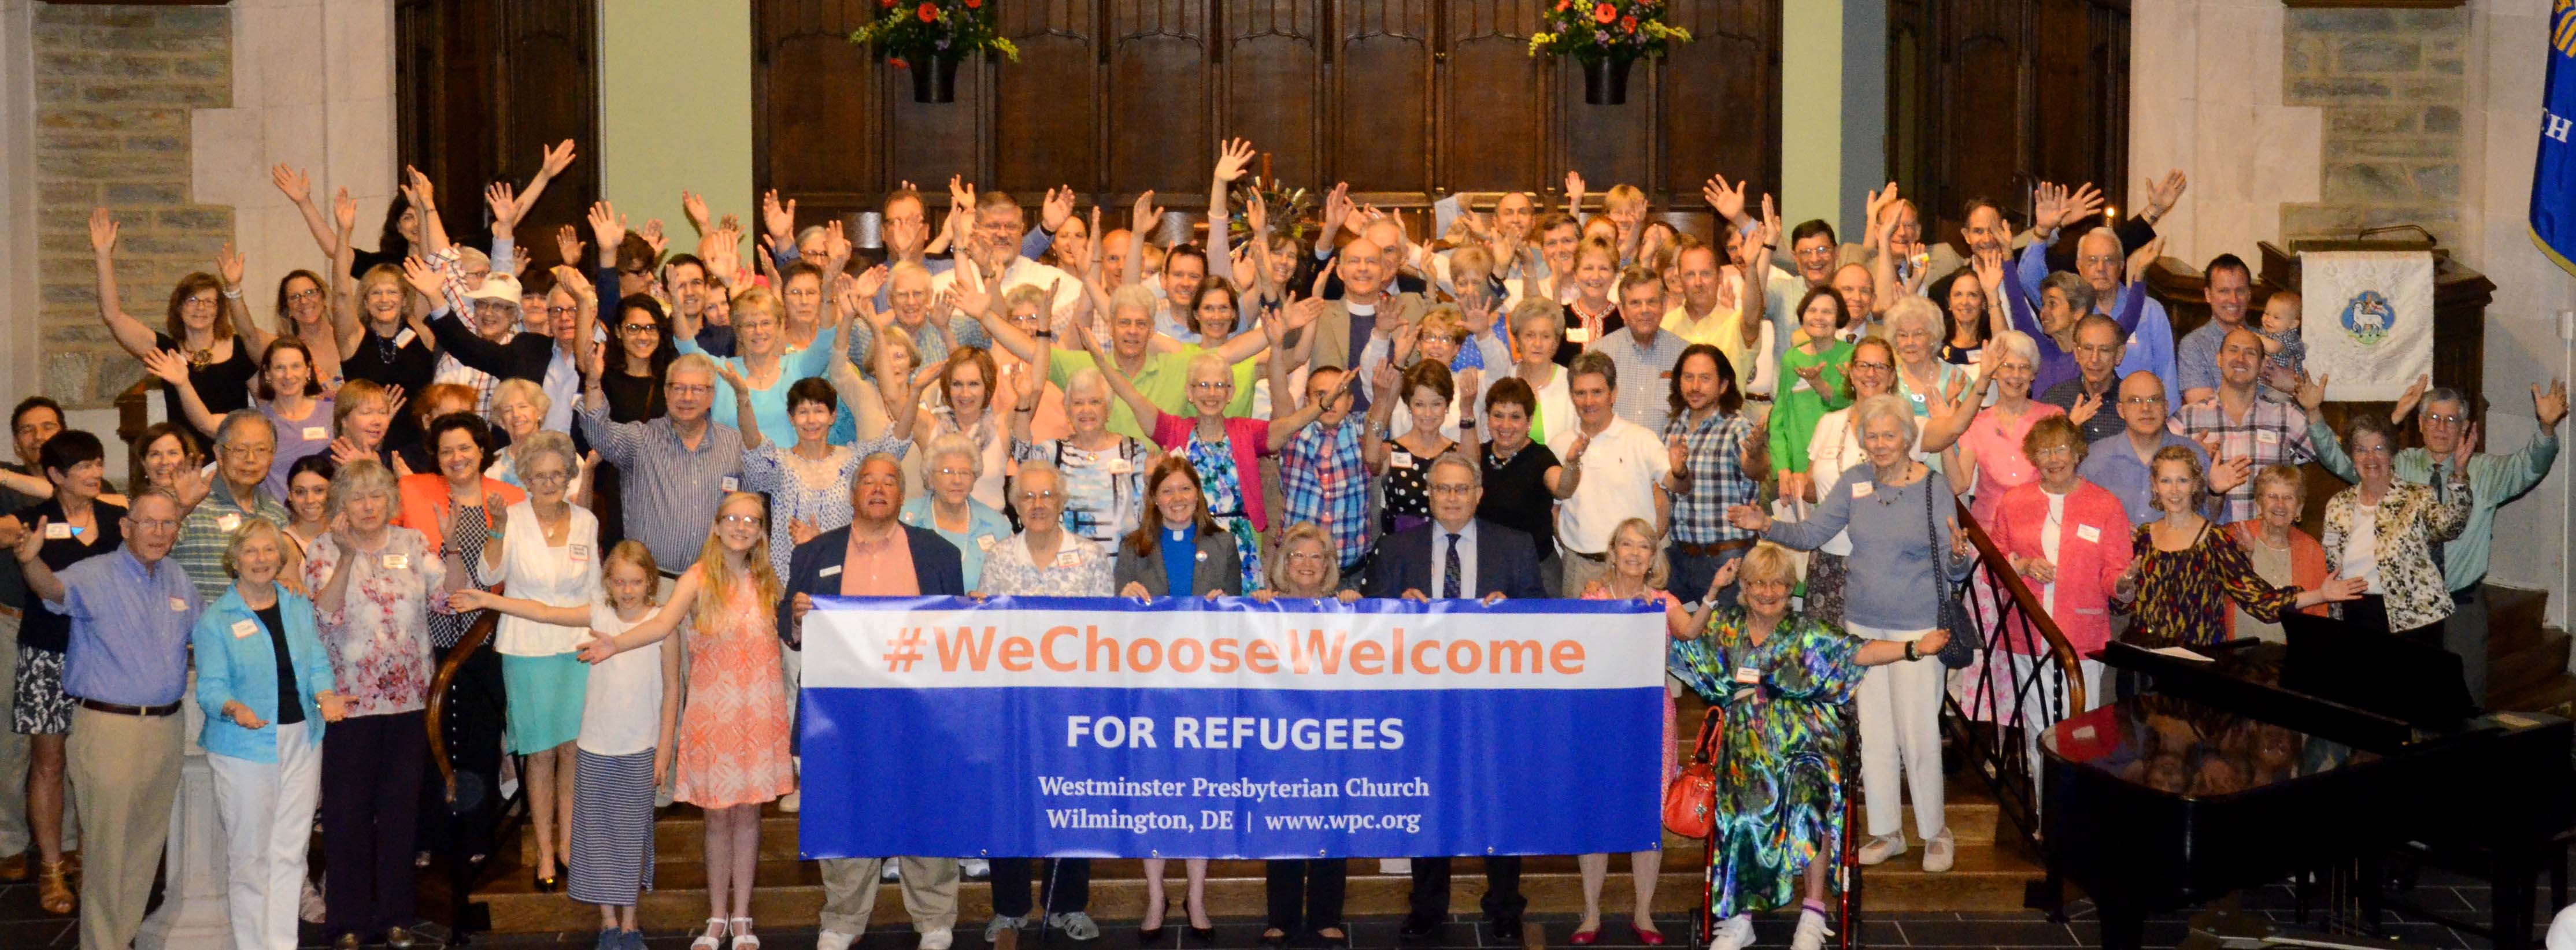 "Members of Westminster Presbyterian Church in Wilmington, Delaware stand behind a banner that reads ""We Choose Welcome for refugees"""